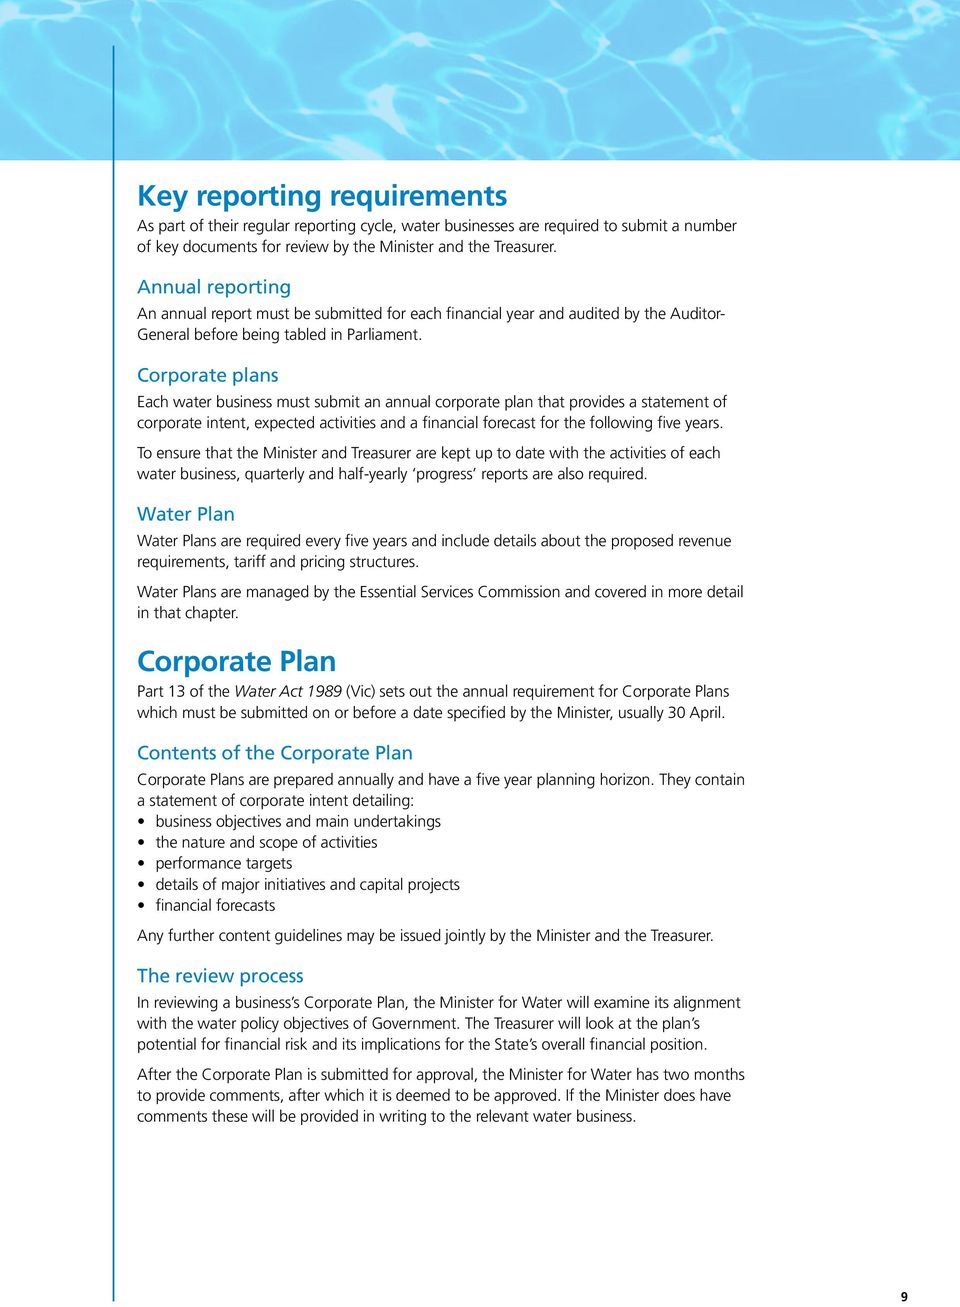 Corporate plans Each water business must submit an annual corporate plan that provides a statement of corporate intent, expected activities and a financial forecast for the following five years.